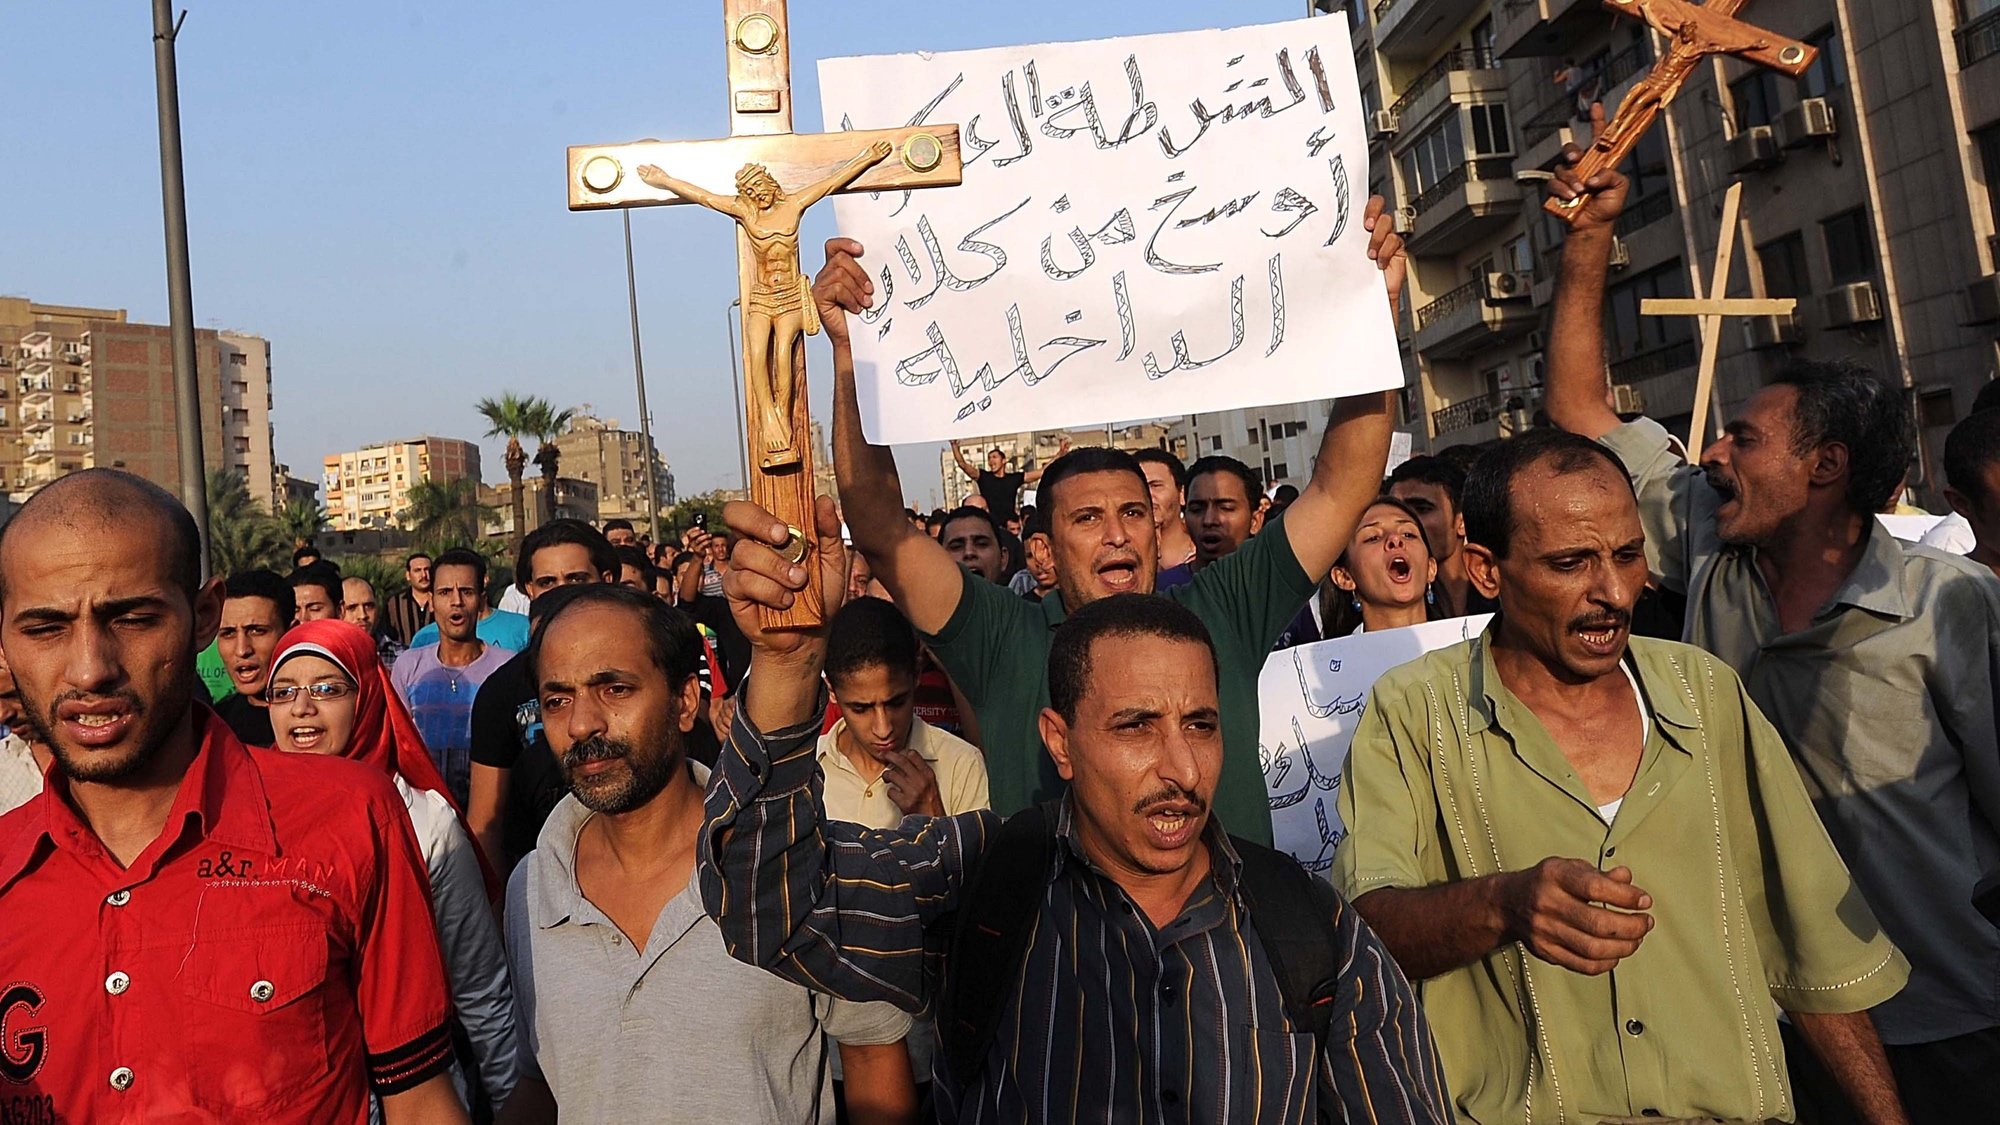 The persecution of Christians and Christian converts in Muslim countries.